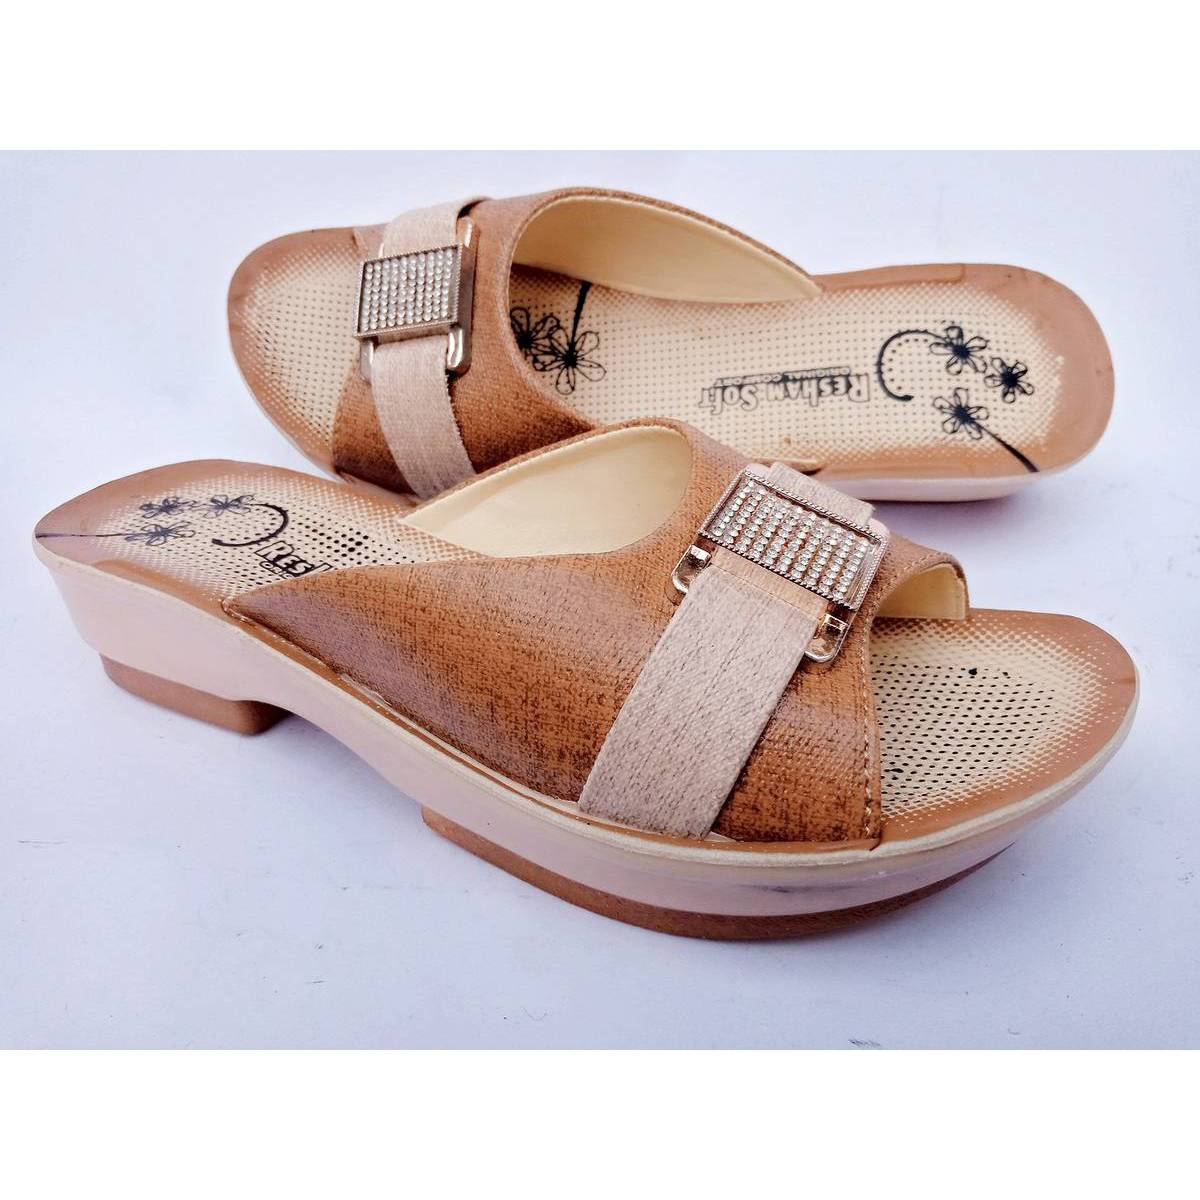 Synthetic Leather Slippers For Women - Slippers / Sandals - Quality and Comfortable